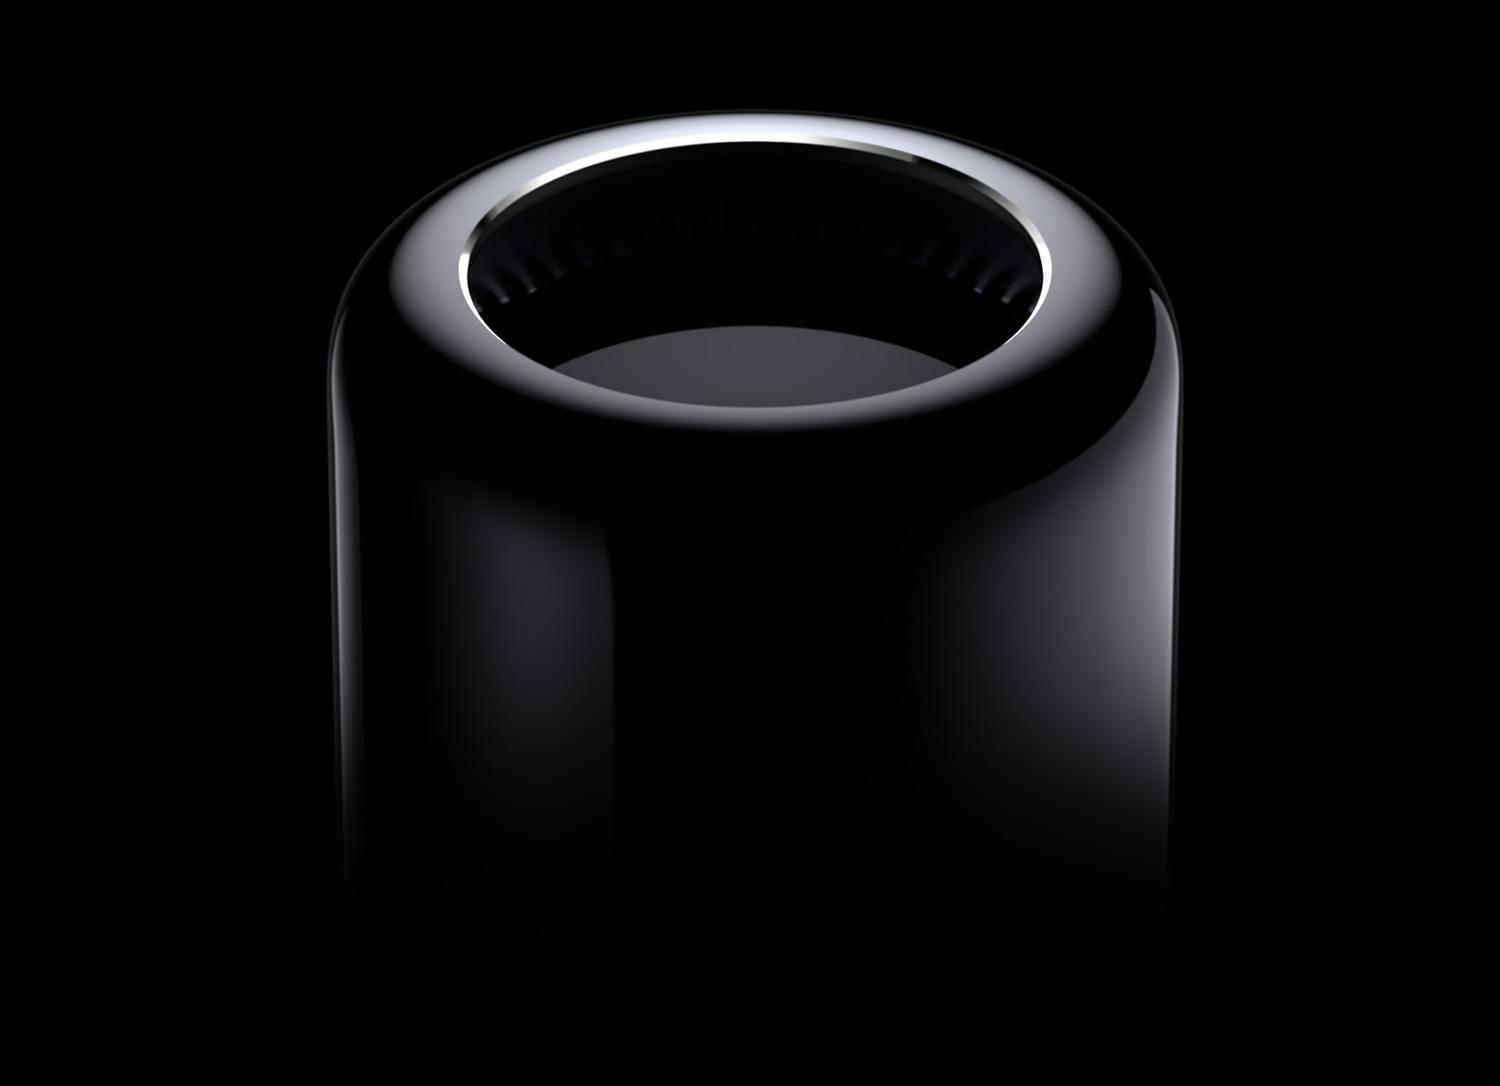 Apple Mac Pro Desktop – The Future Of The Pro Desktop